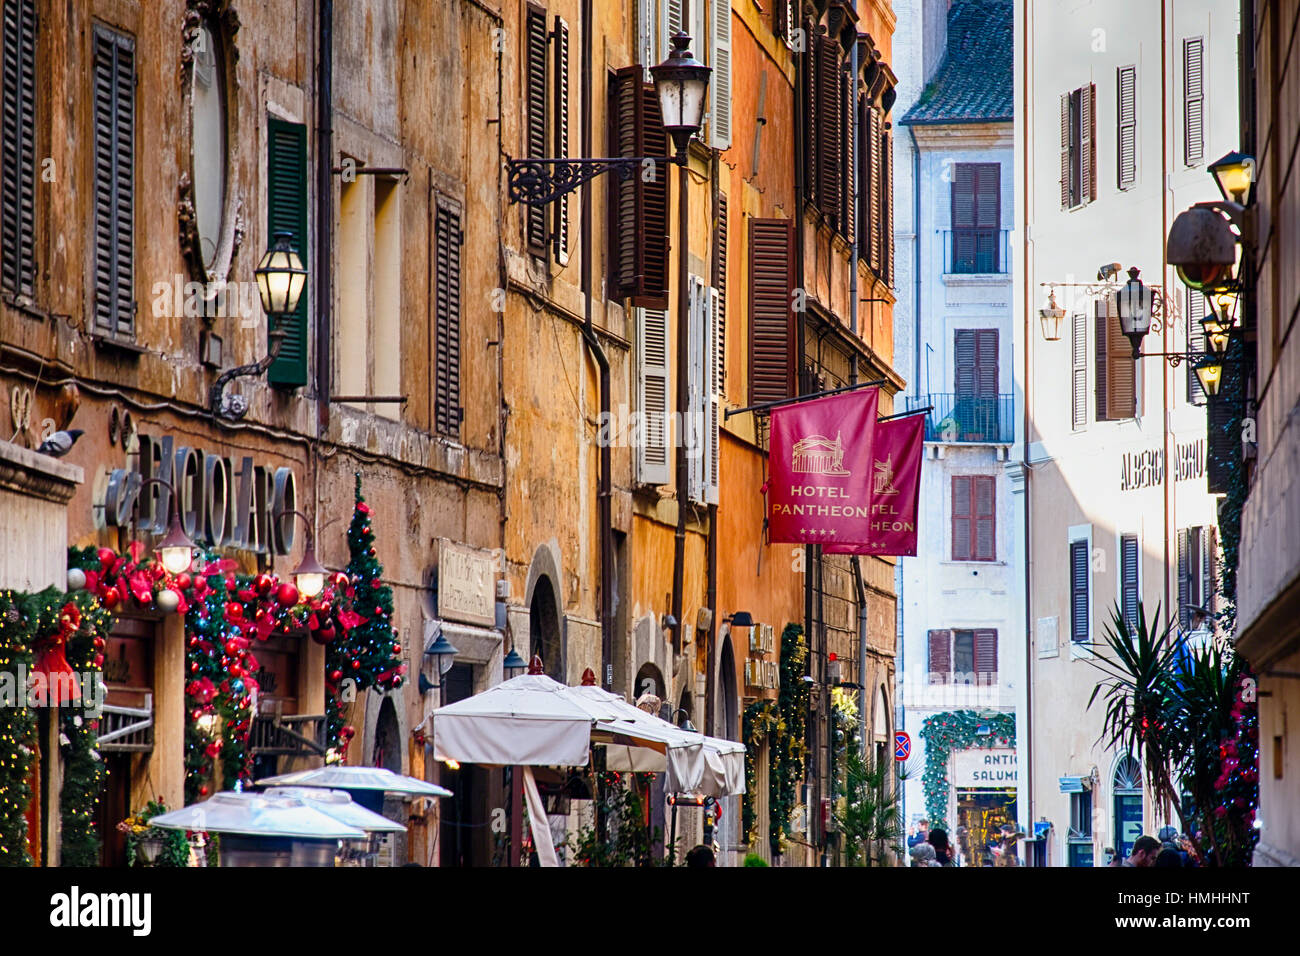 Street in Central Rome During Christmas Holiday,Via dei Pastini, Rome, Lazio - Stock Image